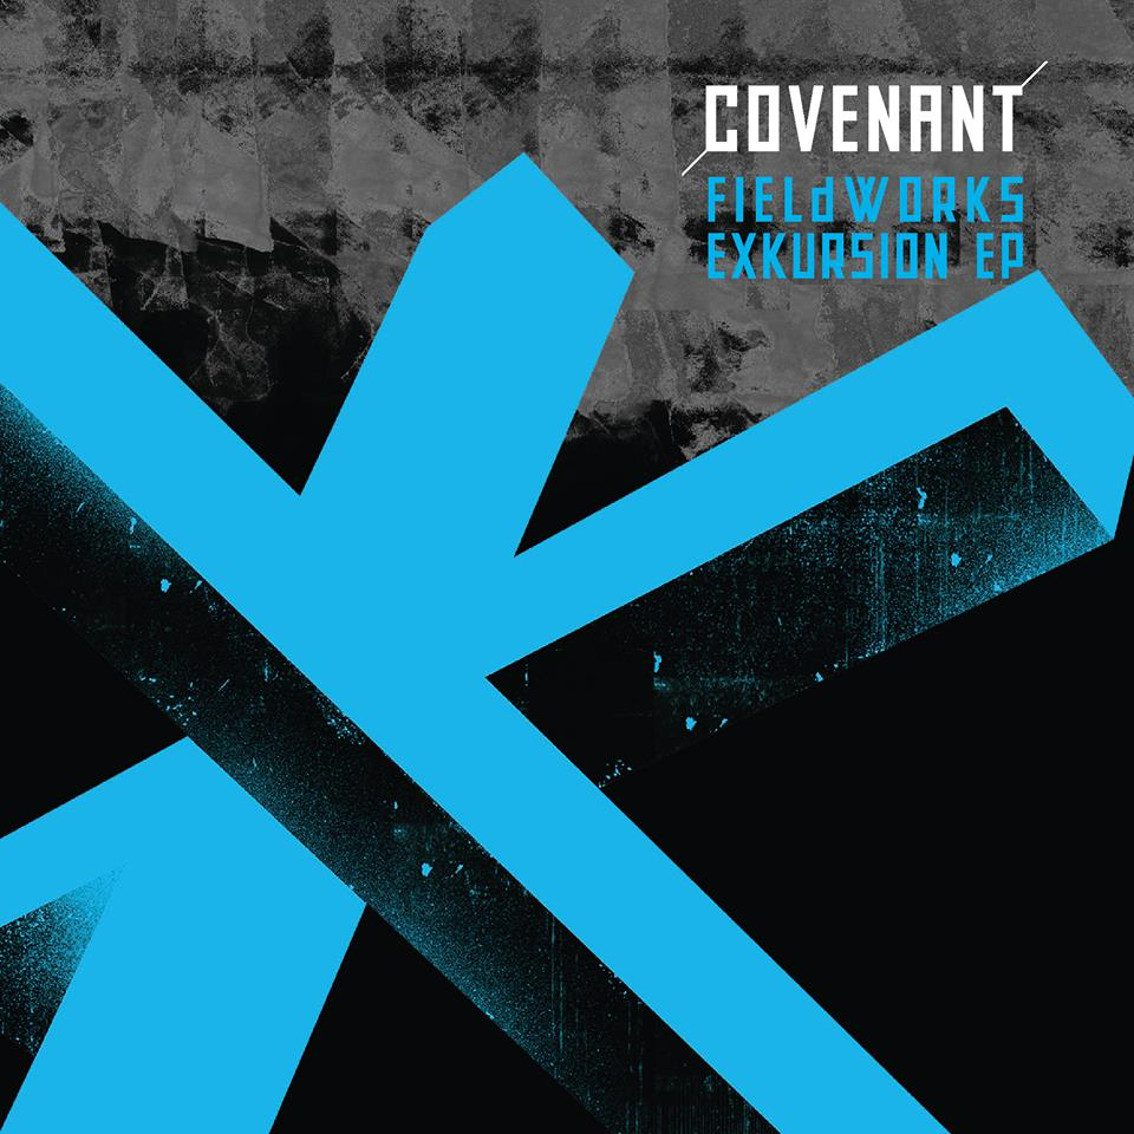 New Covenant EP 'Fieldworks: Exkursion' recorded using field recordings (what else?)